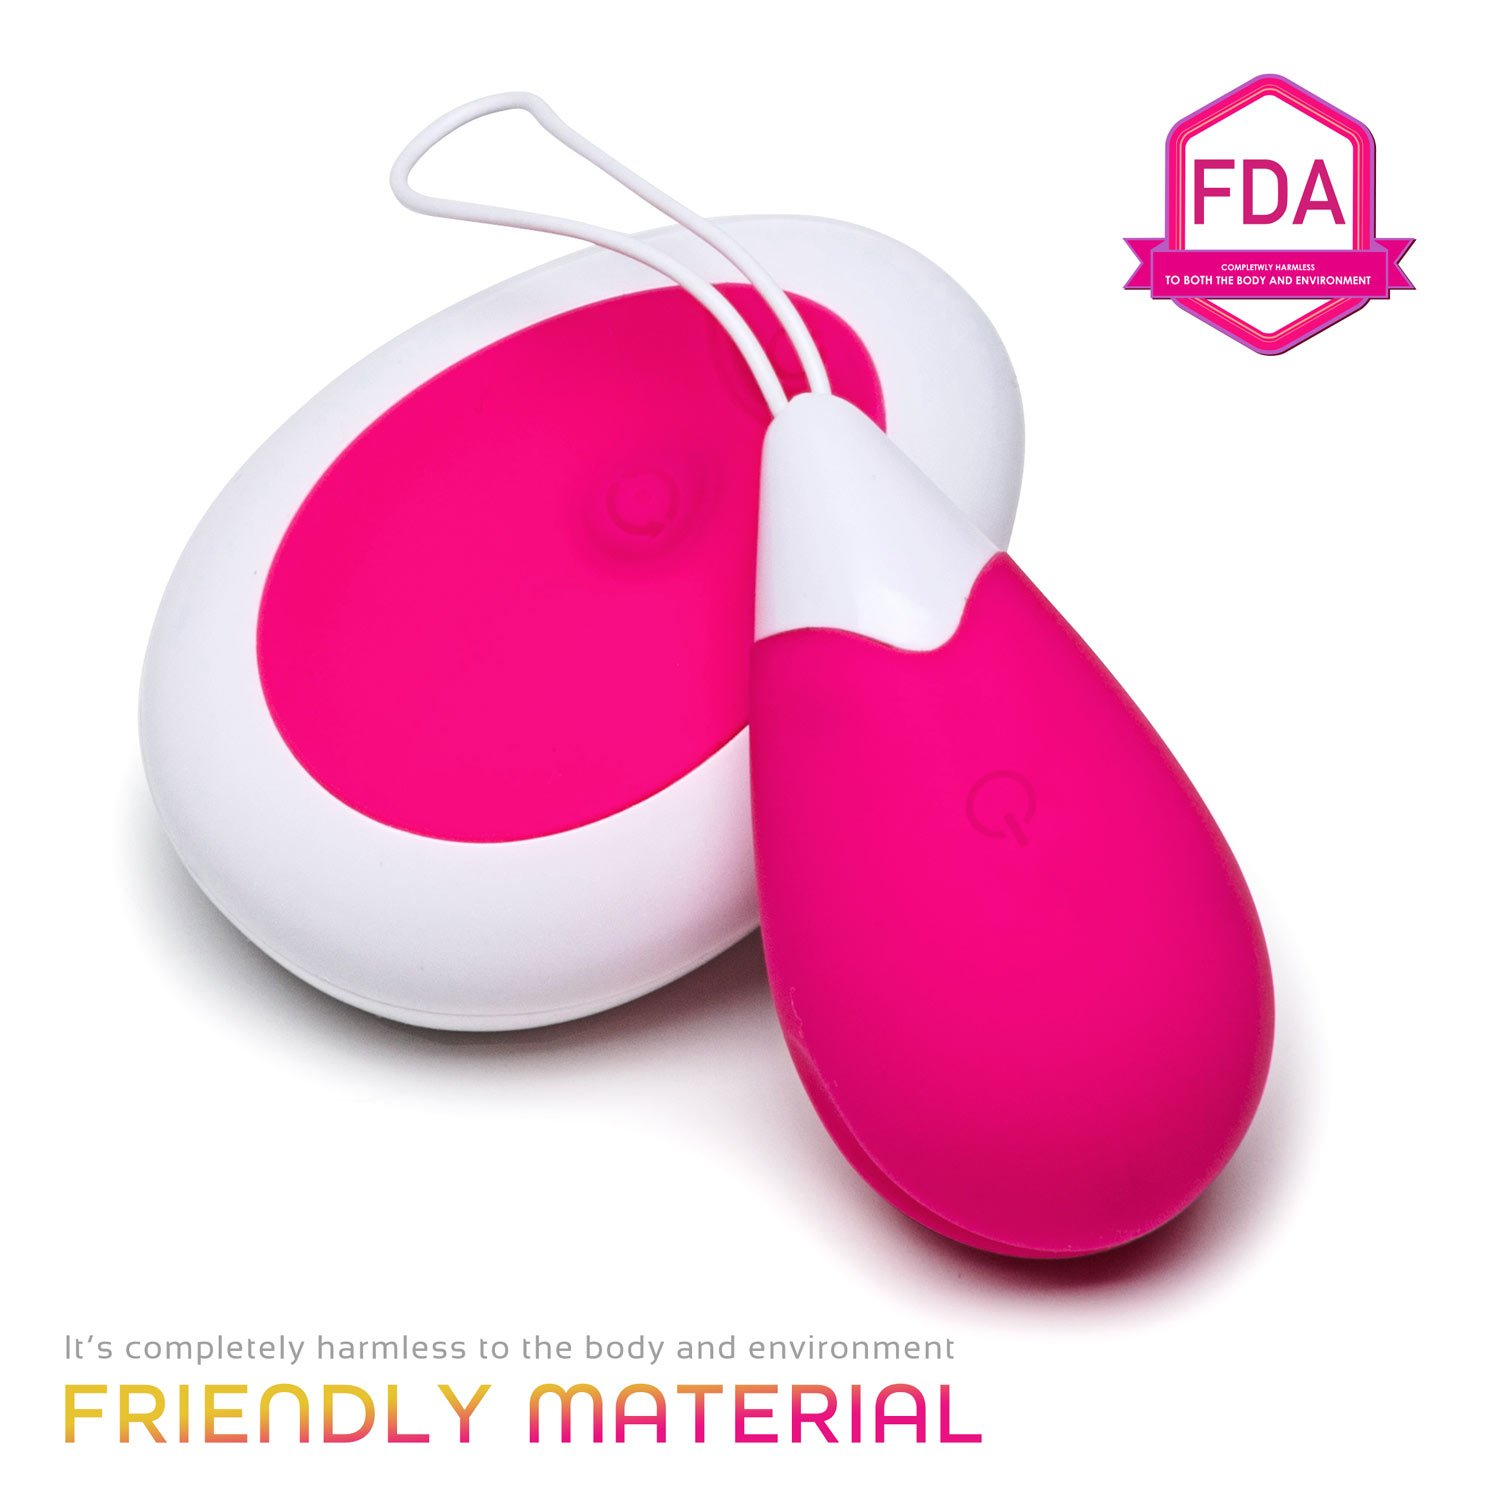 Zubrex Rechargeable Wireless Remote Through - Wall Controlled Egg Kegel Ball Silicone for Women or Personal Use